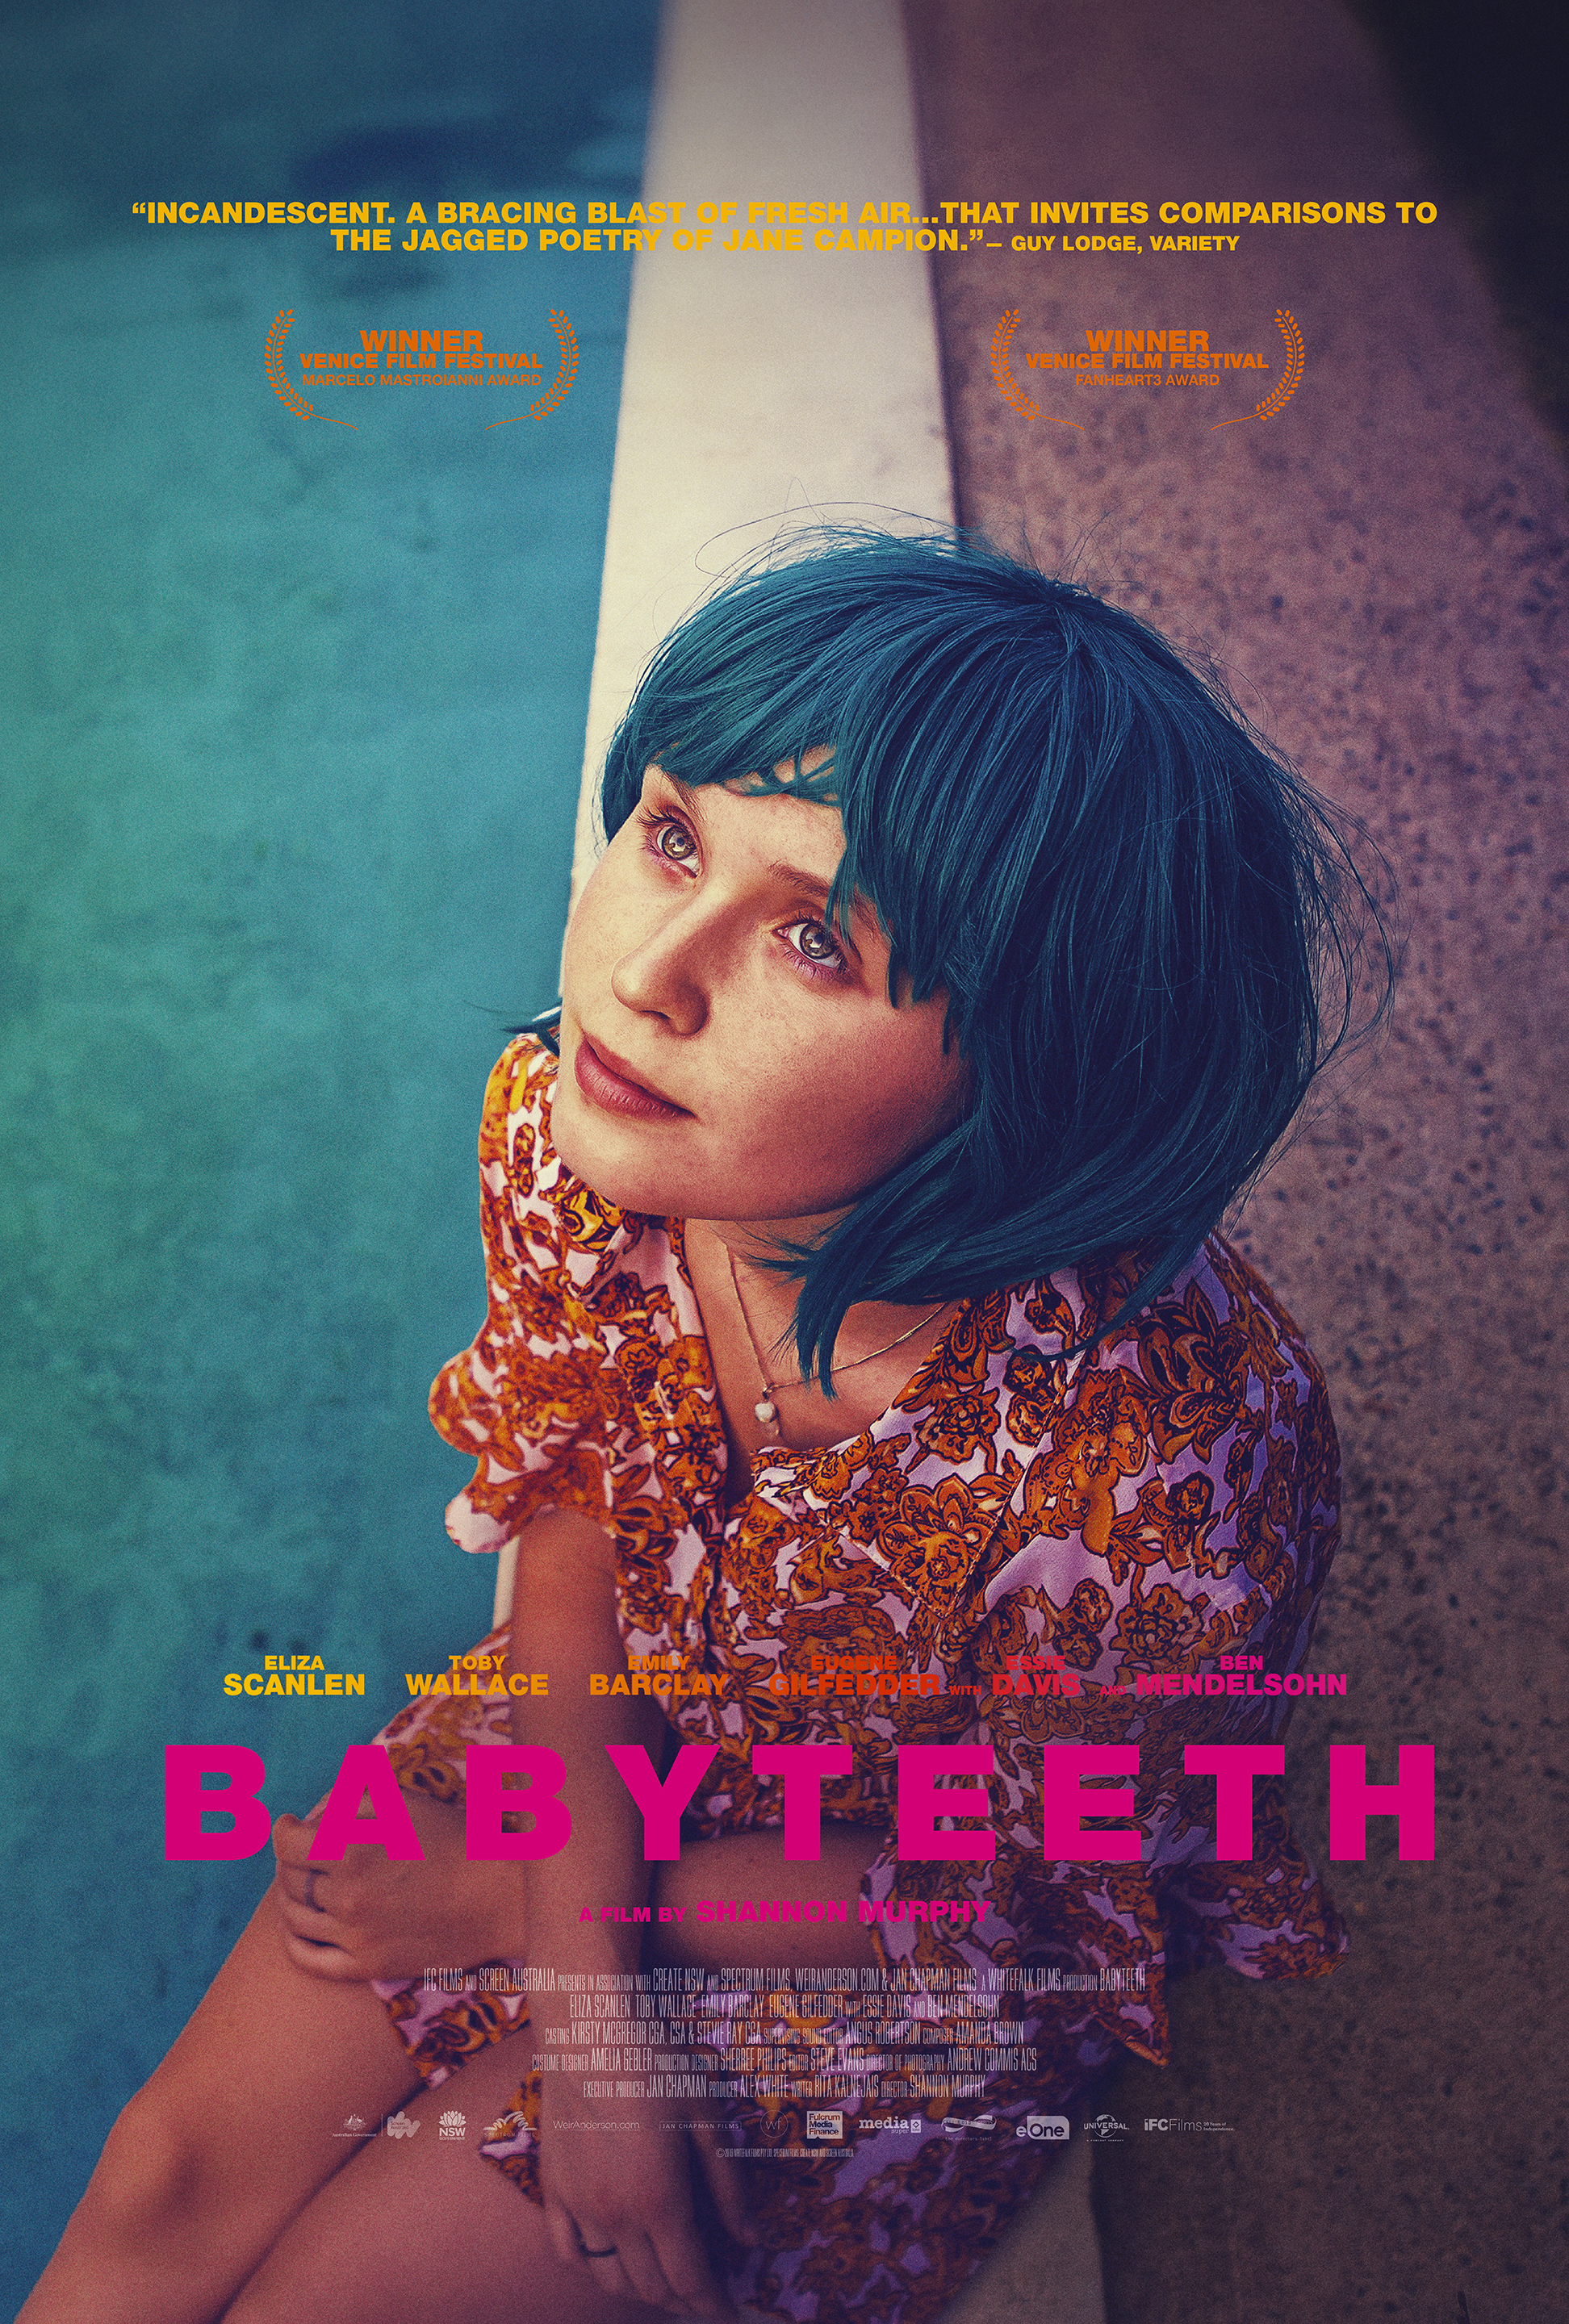 Babyteeth film poster